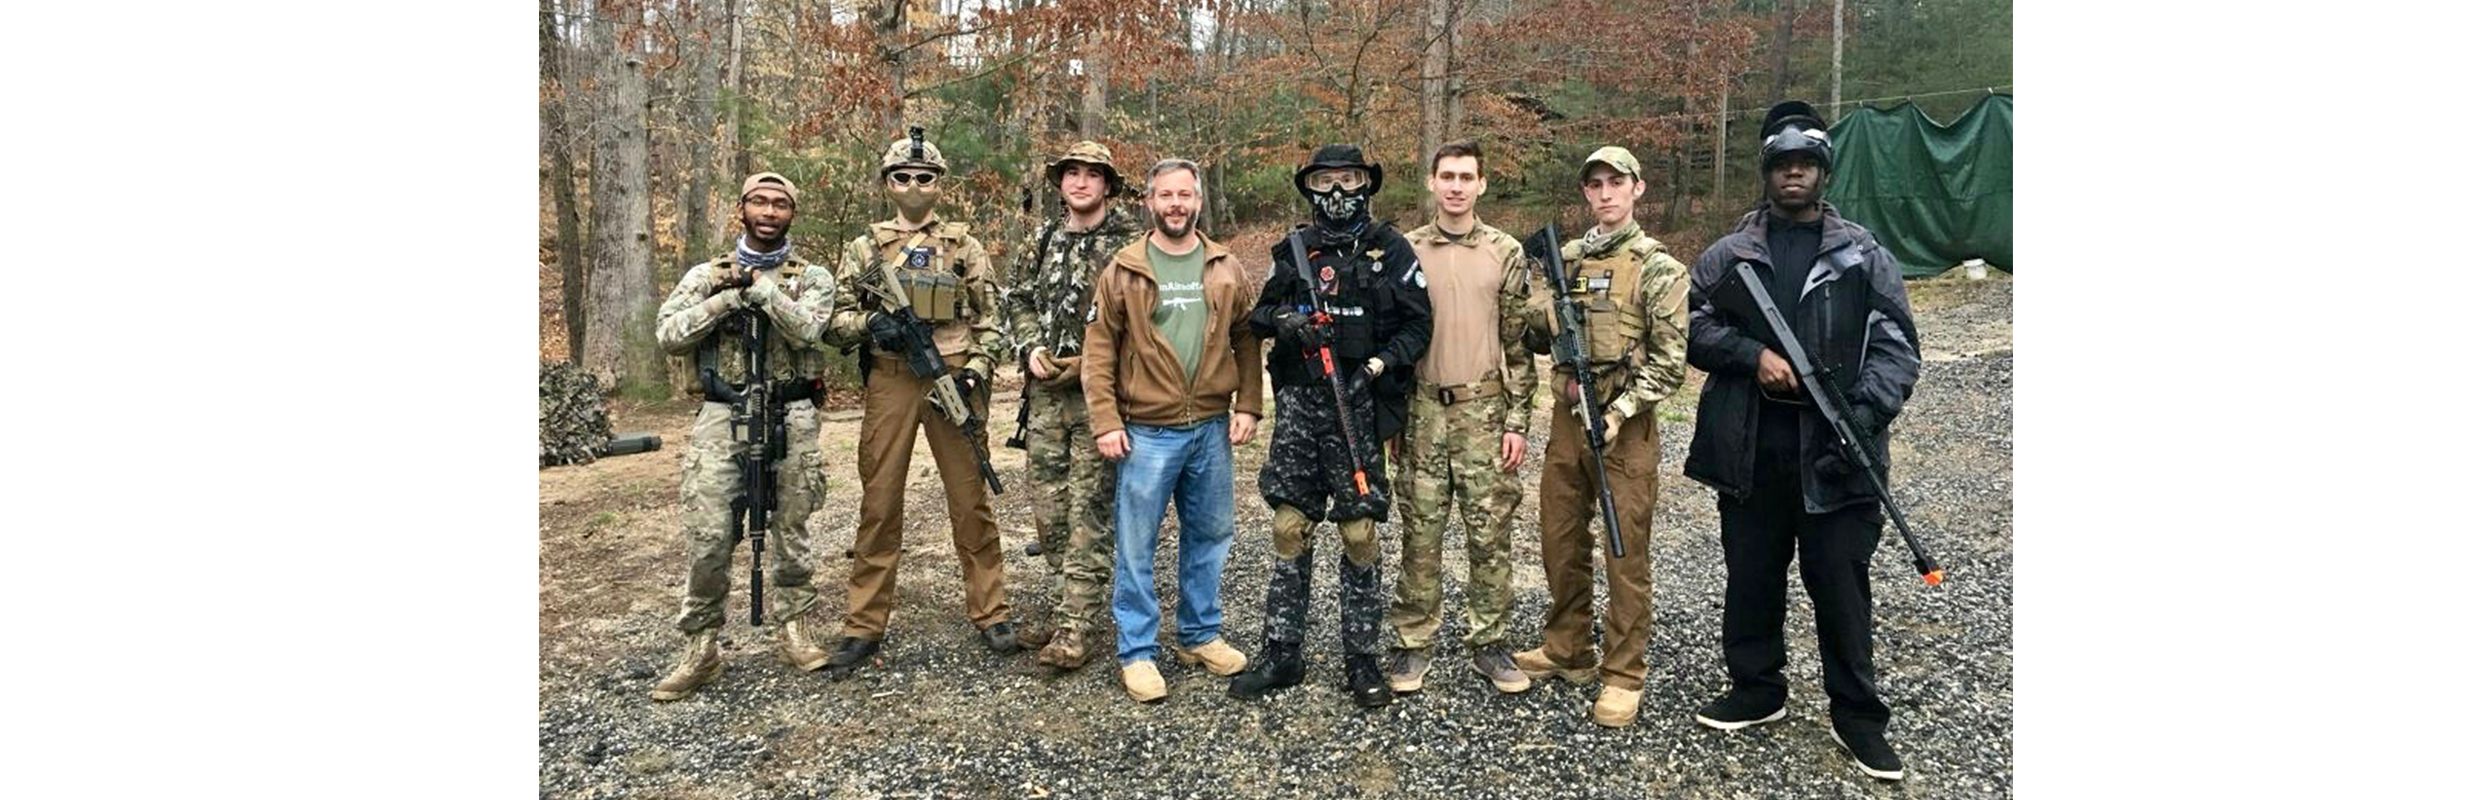 KSU Airsoft Club Team